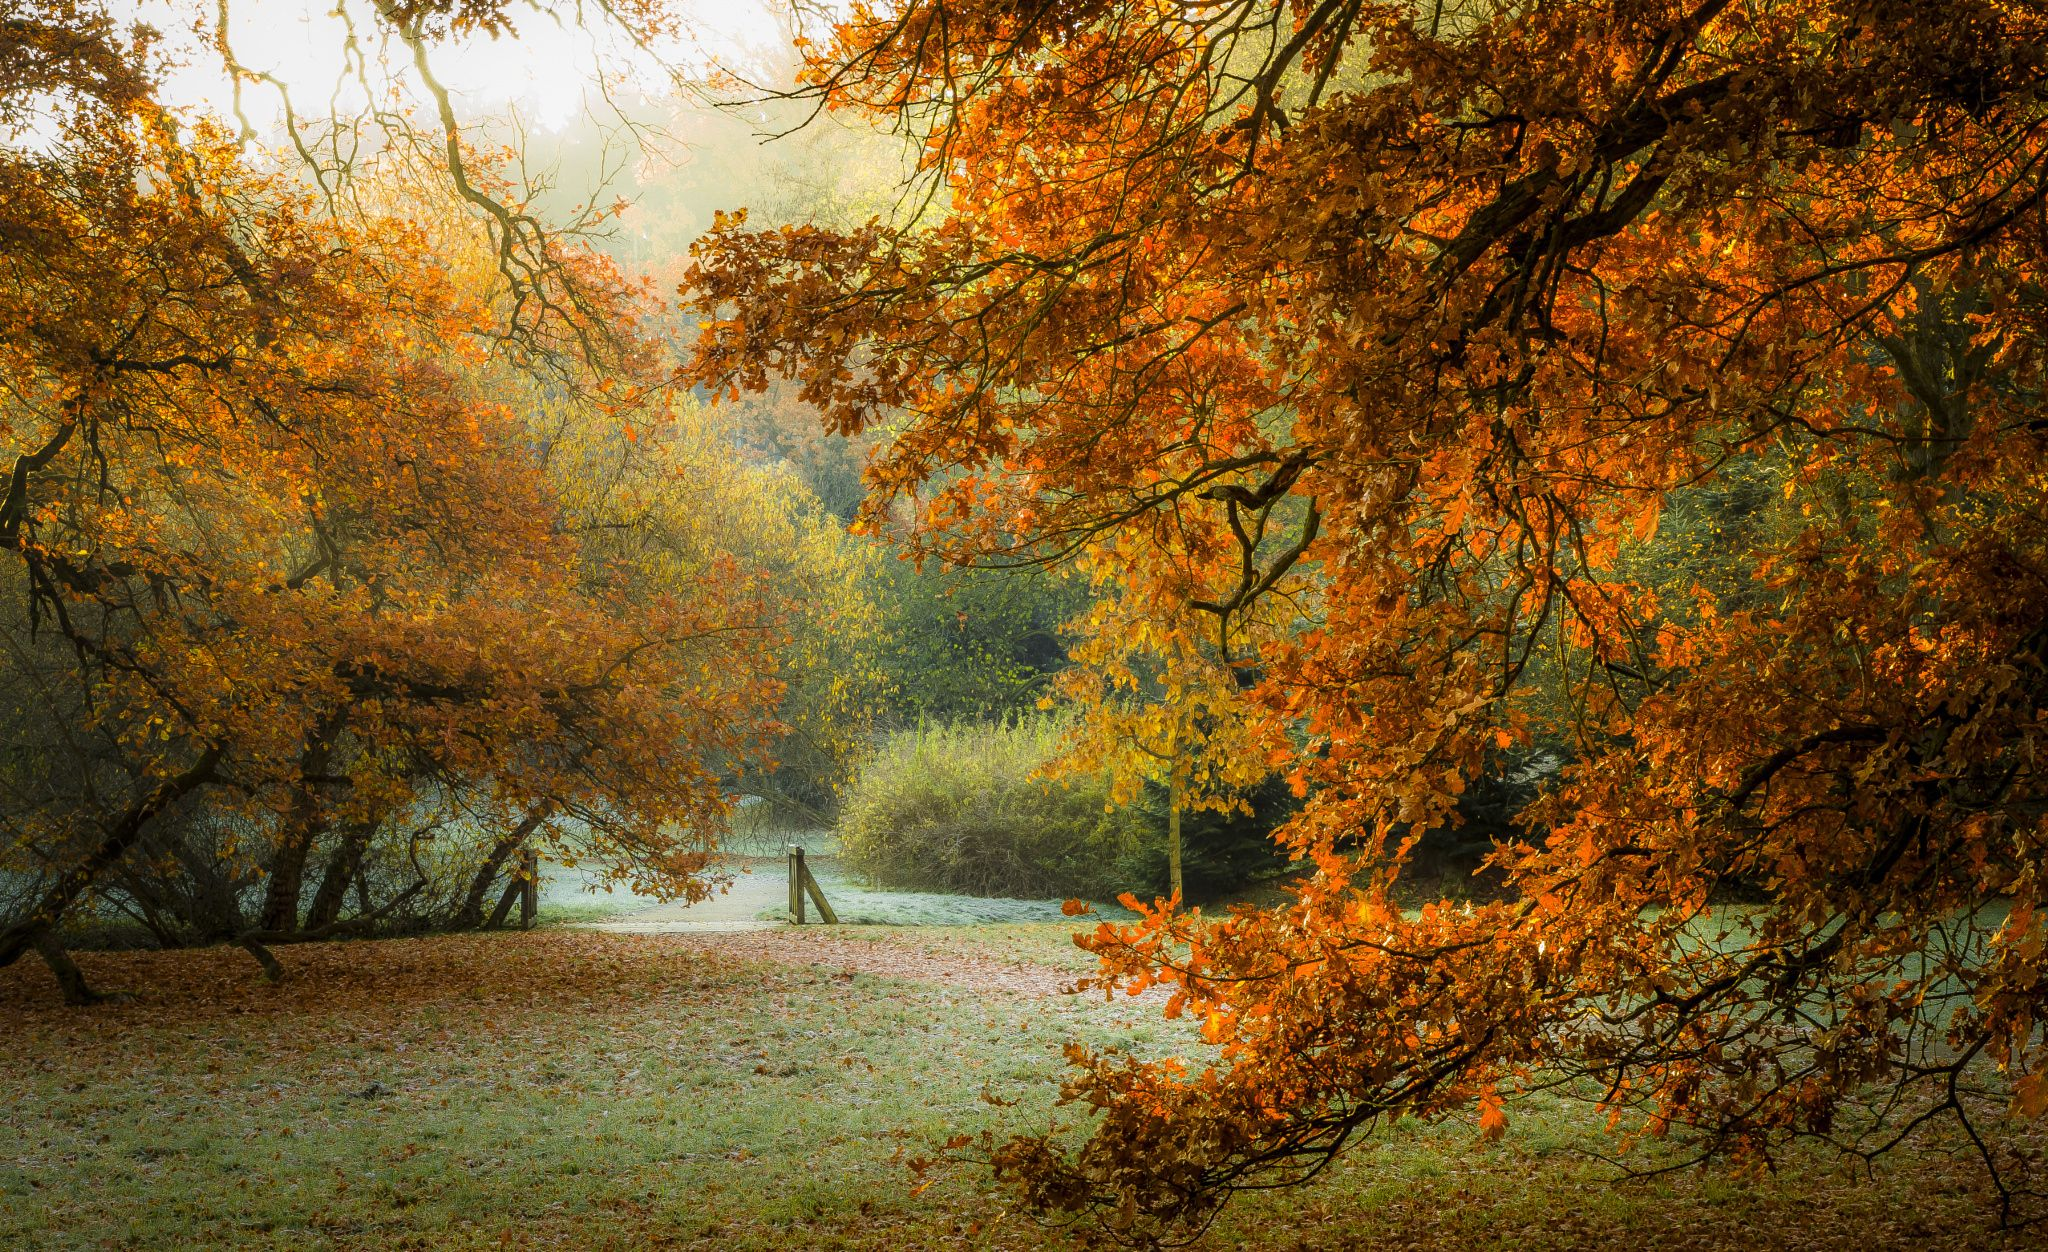 Charging Soul - Morning sun is refreshing and recharging; autumn in Pruhonice Park near Prague